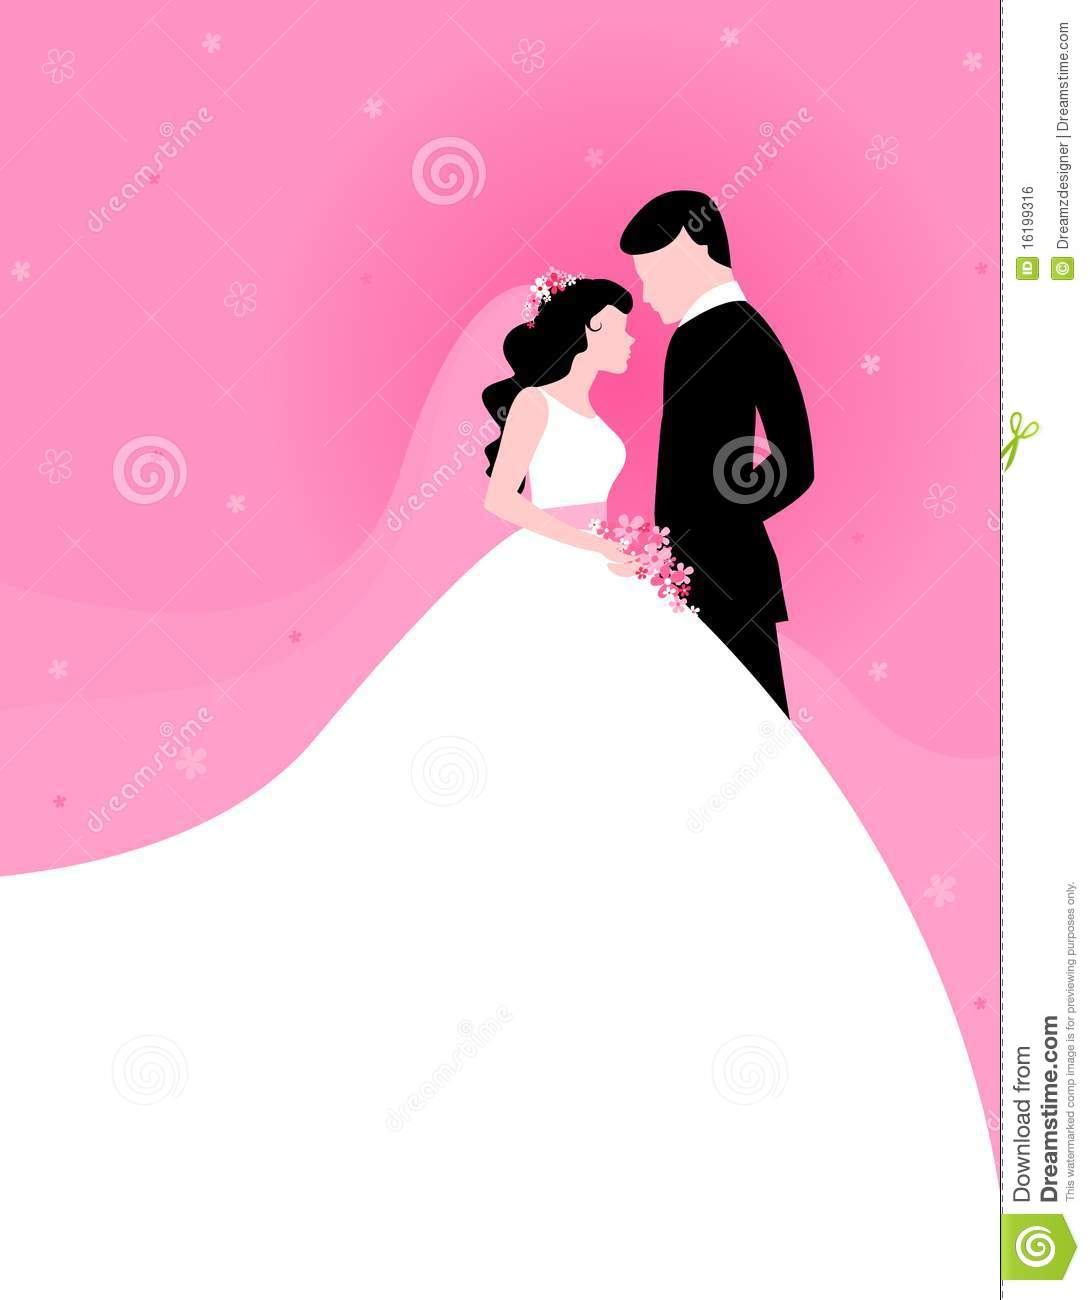 Cute Young Couple Hd Wallpaper Couple With Pink Background Royalty Free Stock Image